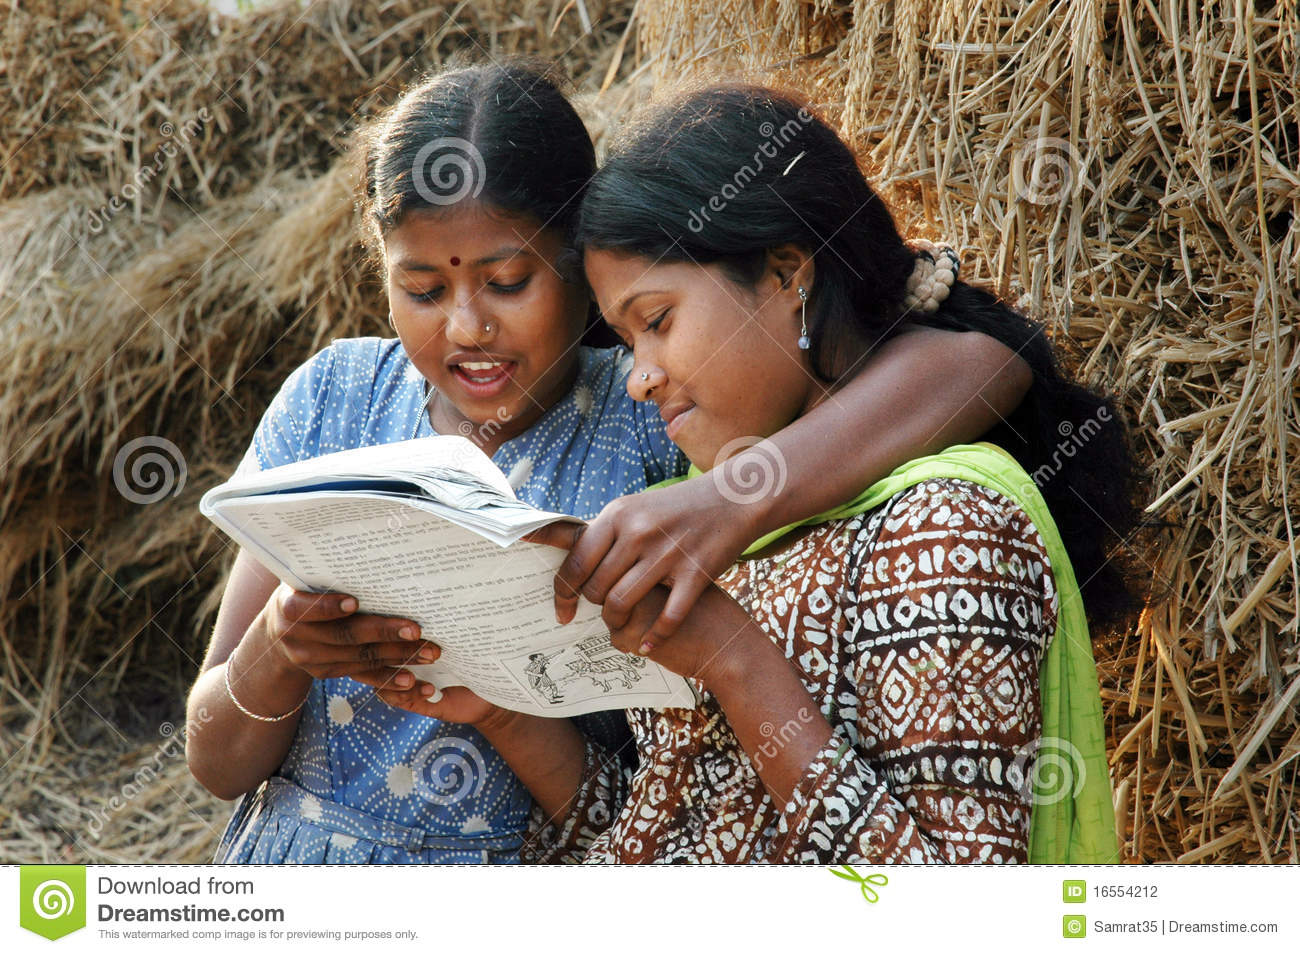 rural education in india essay Comparison/contrast essay: urban and rural lifestyles current essay topics guide is an attempt to mark out the typical topics requested by our customers and explain the research and writing.